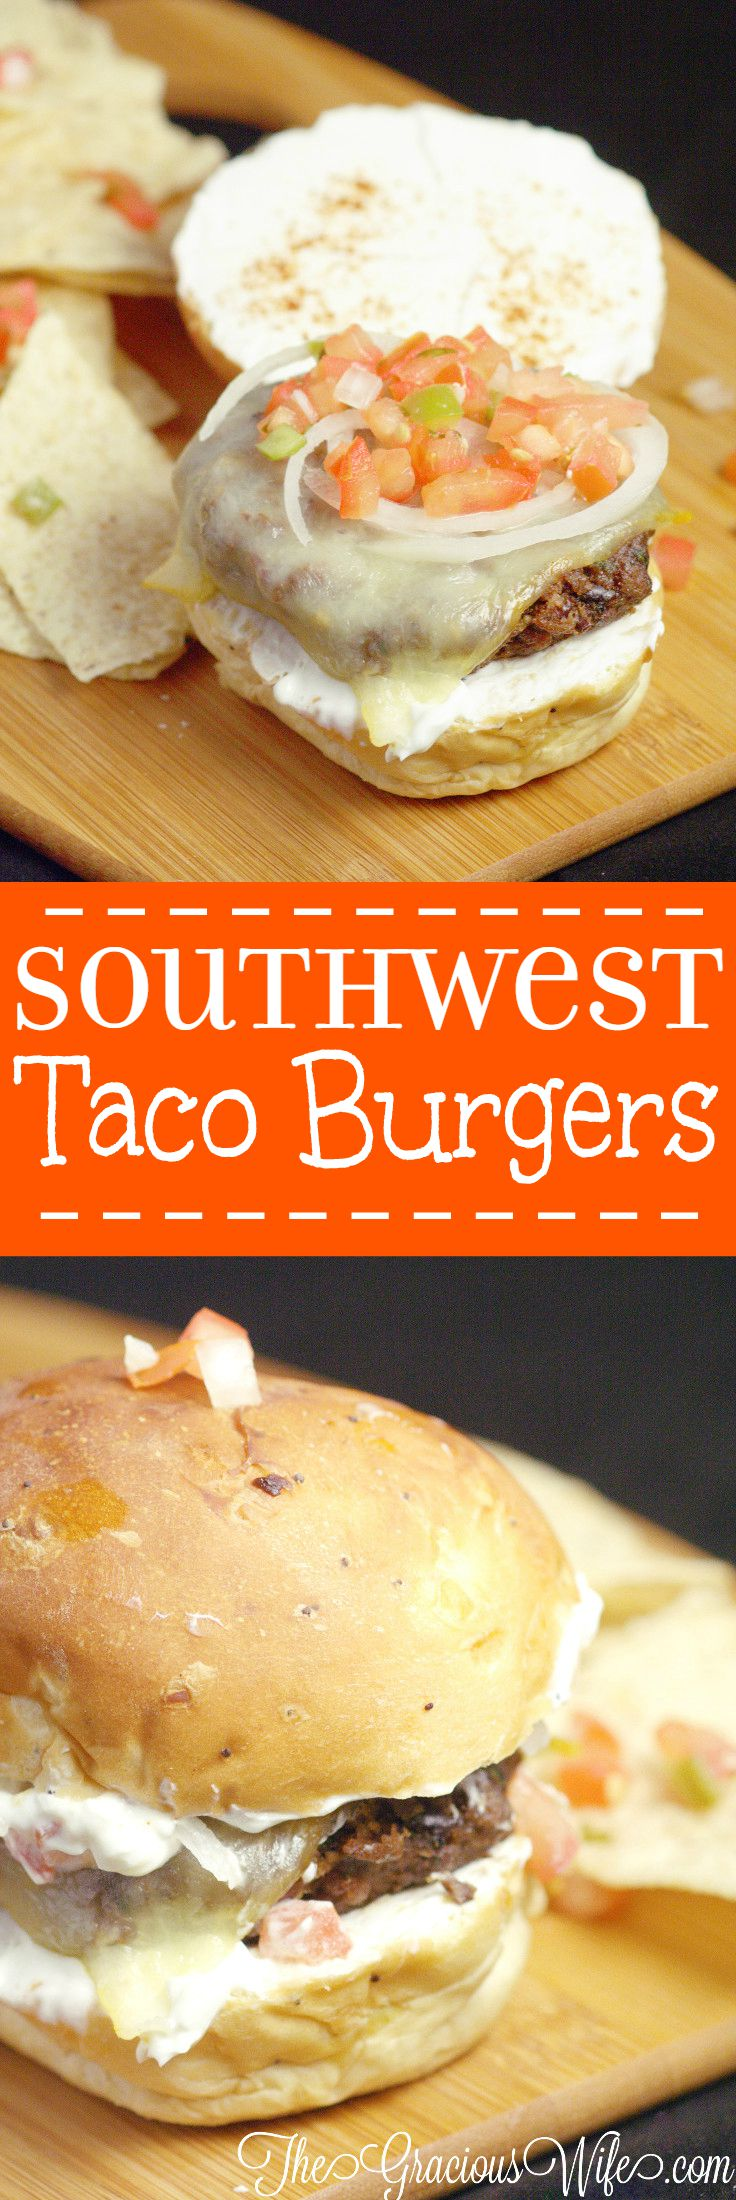 Southwest Taco Burgers Recipe - a homemade beef burger recipe with homemade taco seasoning, grilled to perfection and dressed up like a taco. So easy but amazingly delicious!